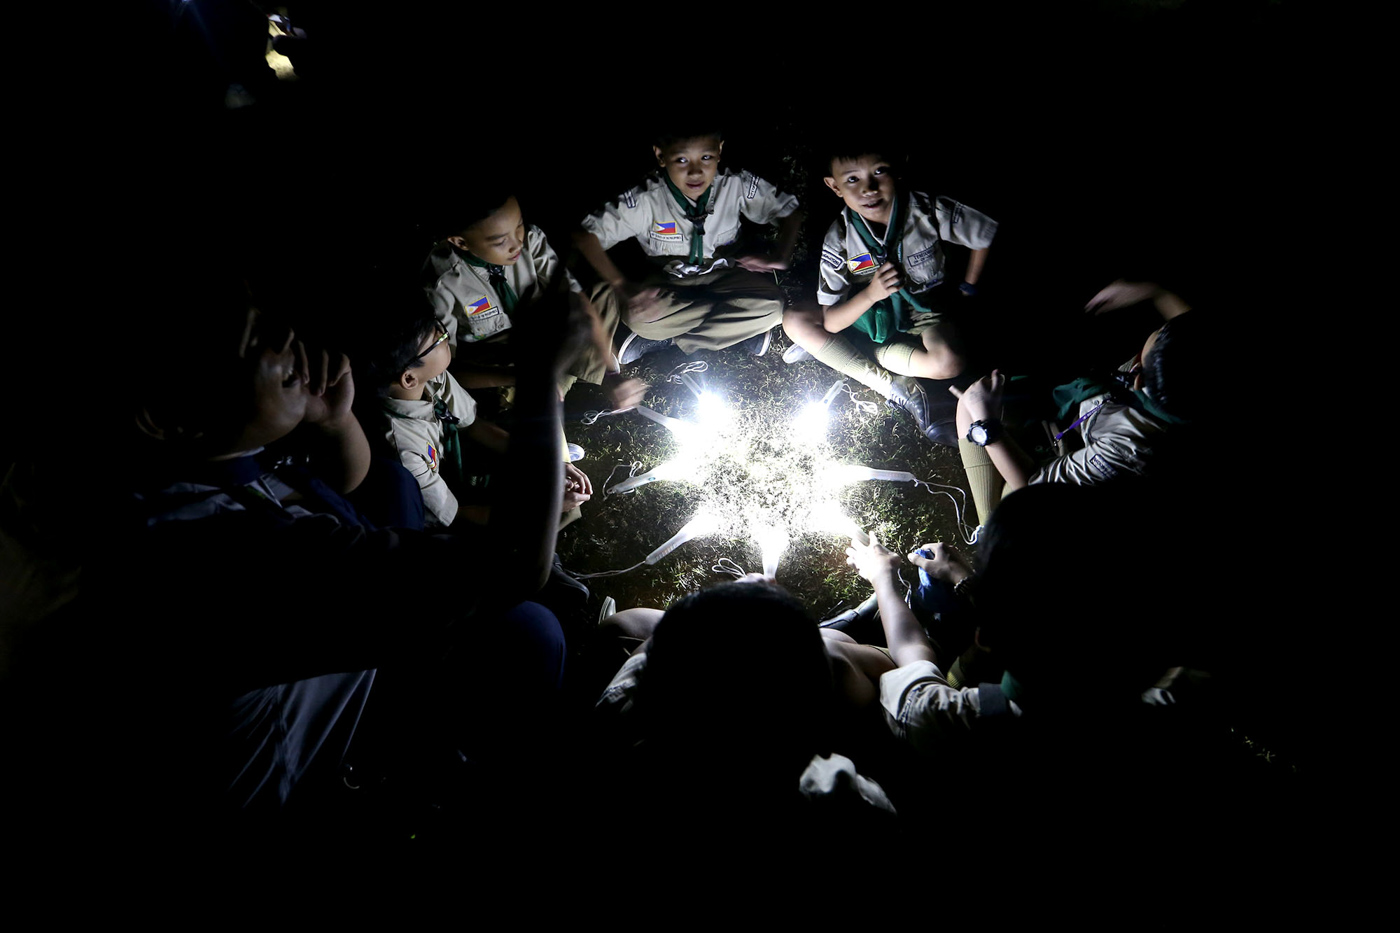 BOY SCOUTS. Members of the Boy Scouts of the Philippines join the observance of Earth Hour 2019 at Circuit Makati in Makati City on March 30, 2019. Photo by Inoue Jaena/Rappler